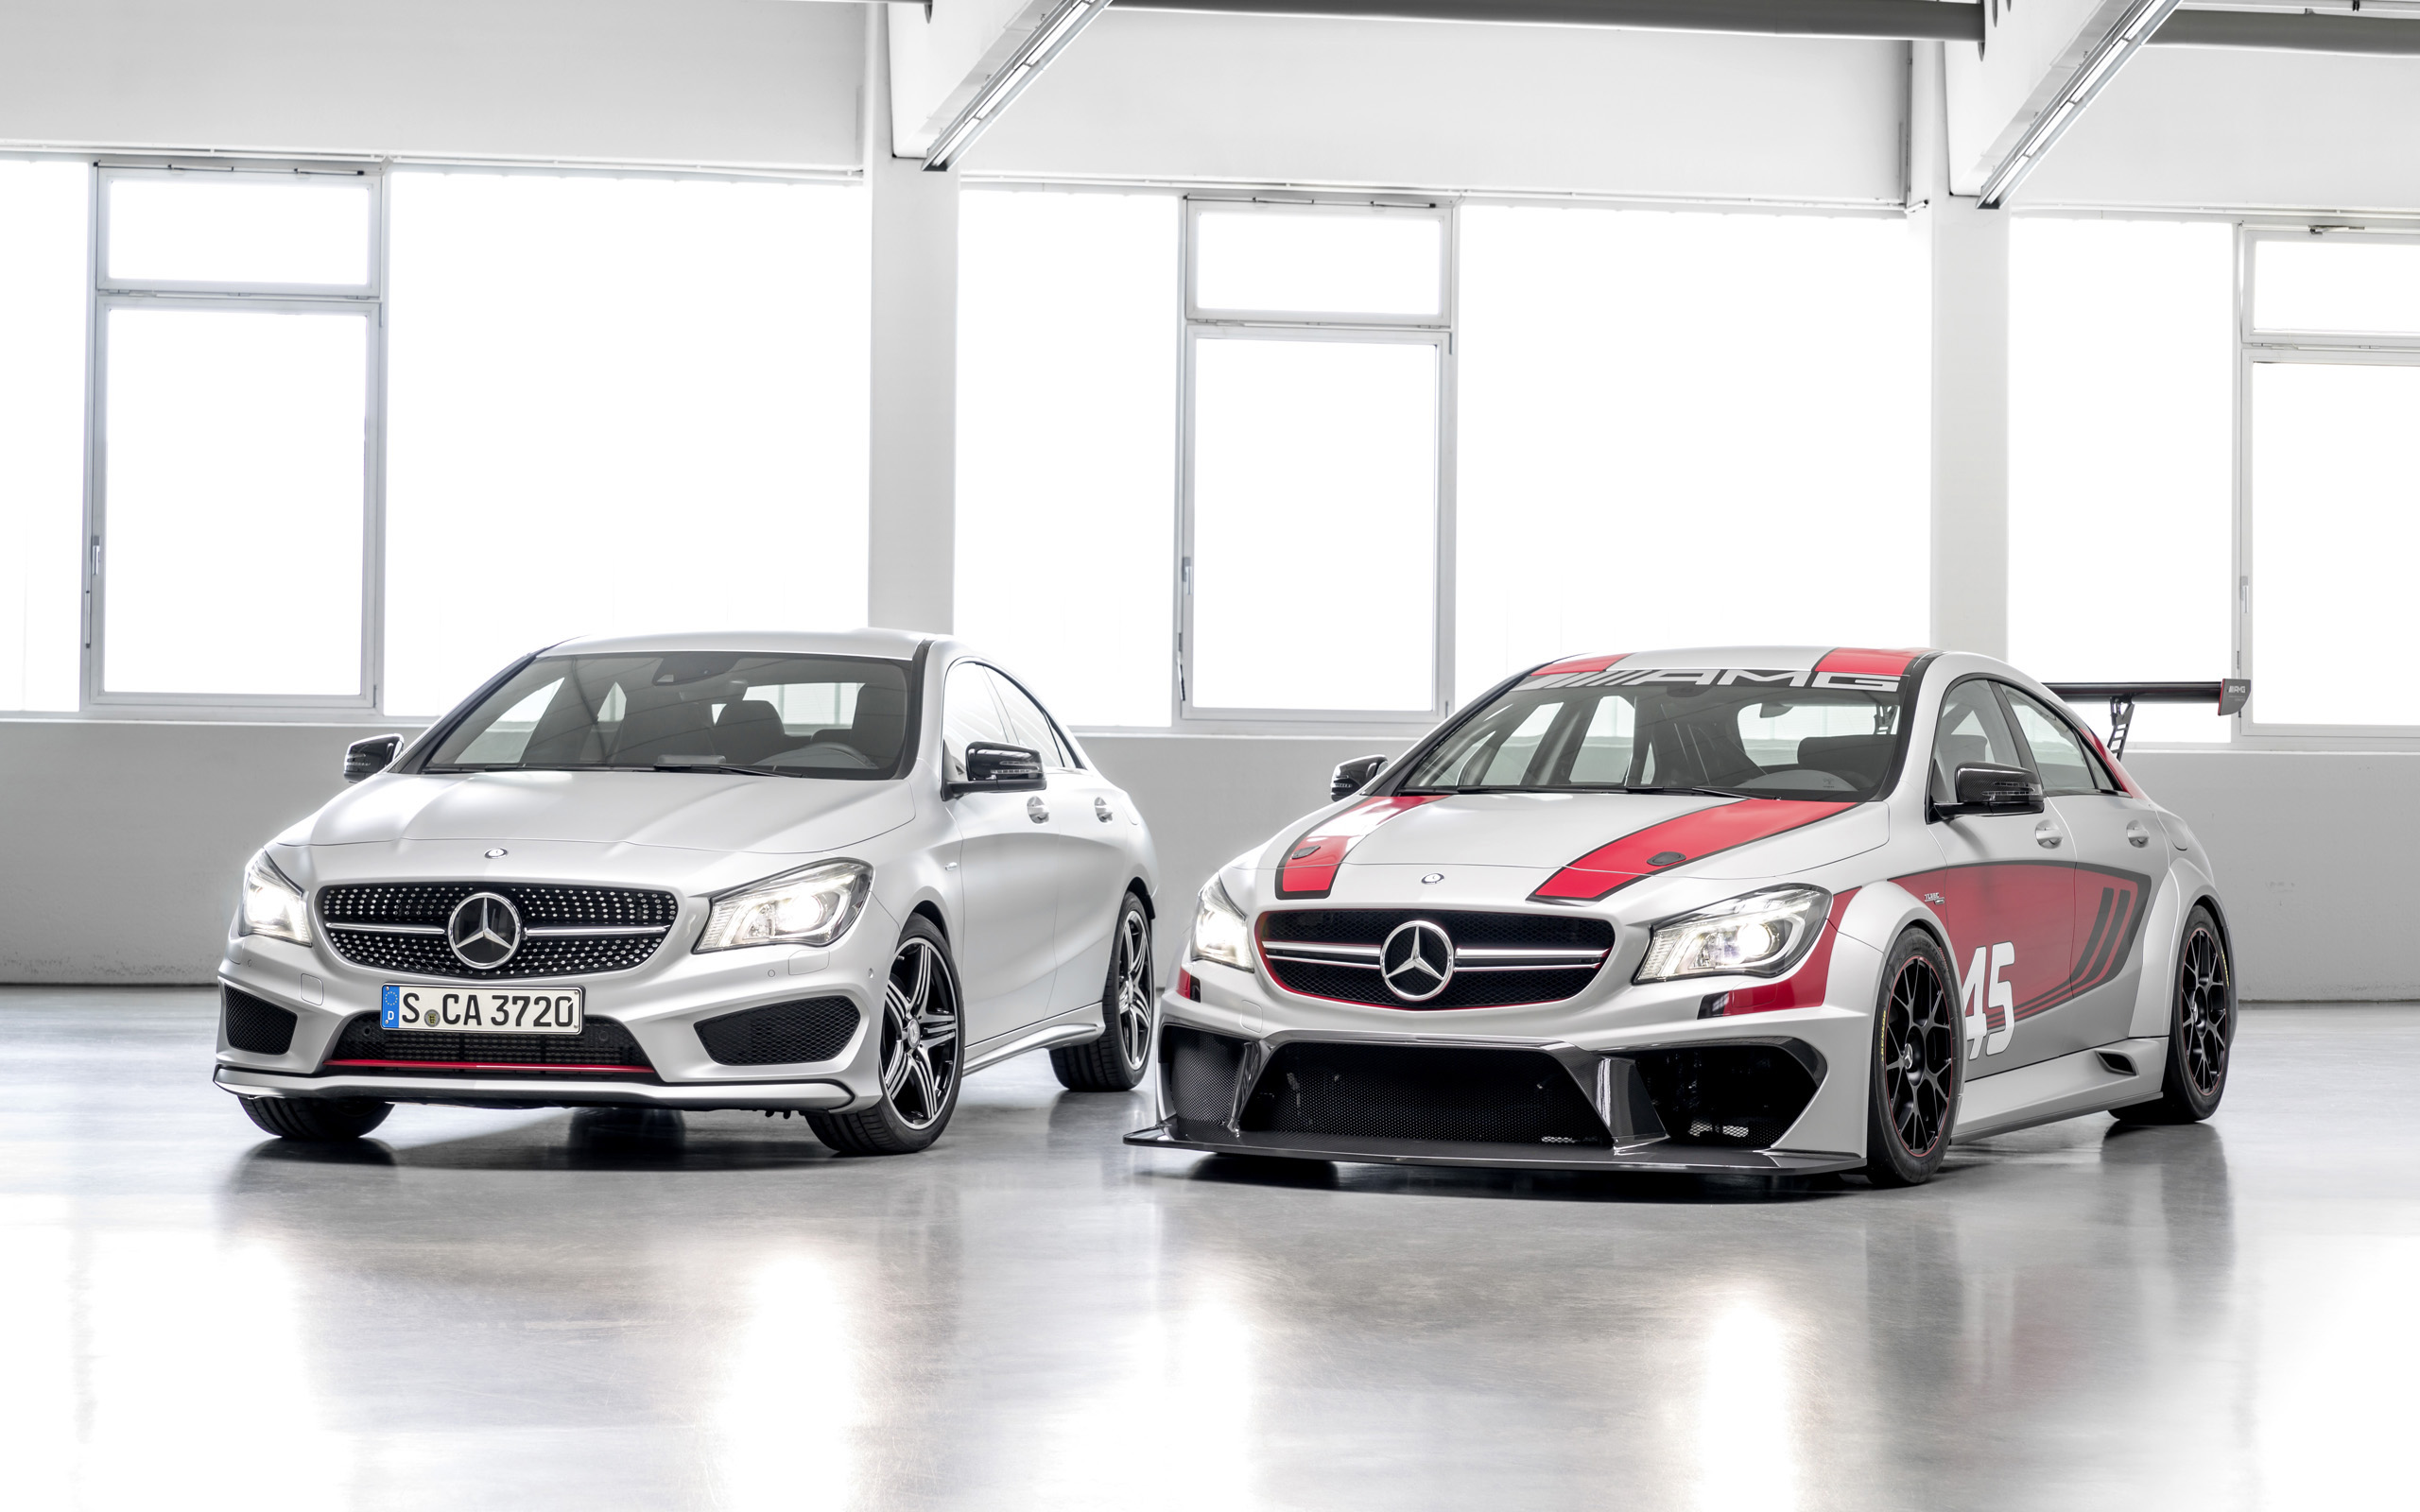 2014 Mercedes Benz CLA 45 AMG Racing Series Wallpaper HD Car 2560x1600